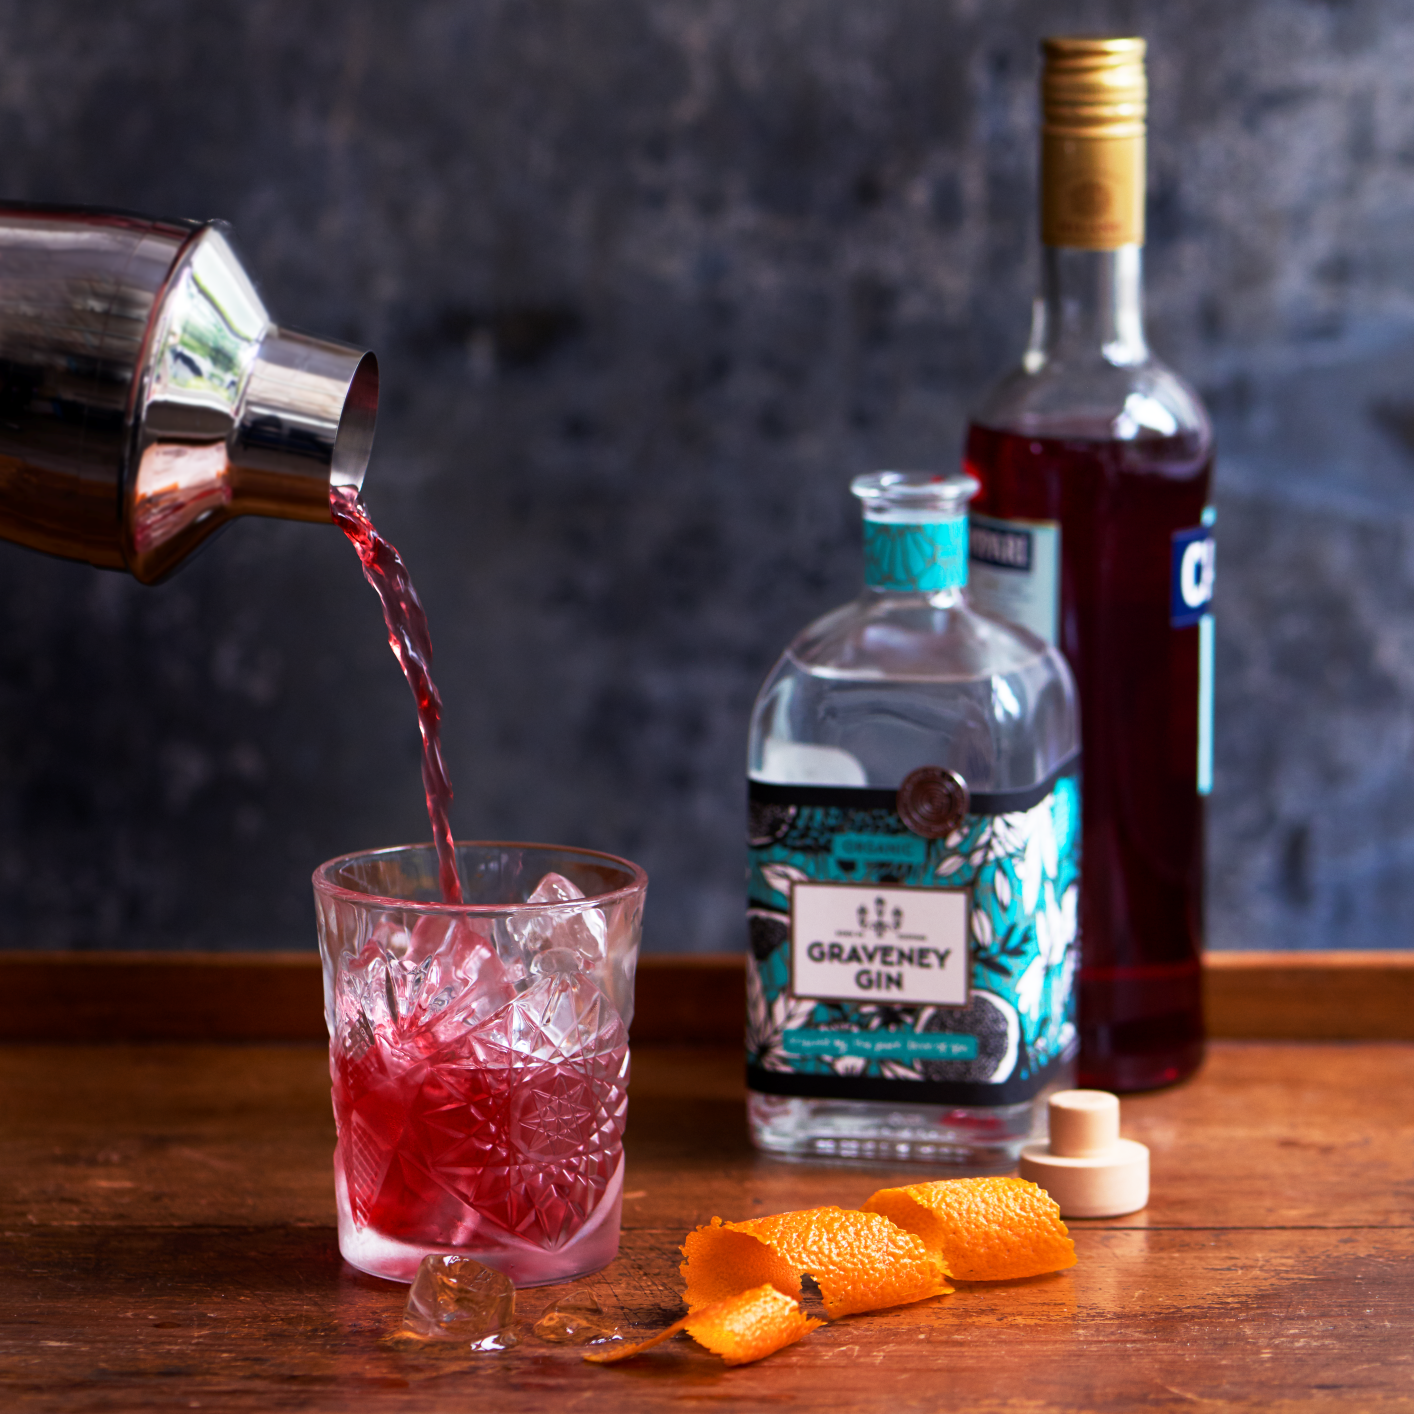 Negroni Pouring Graveney Gin.png